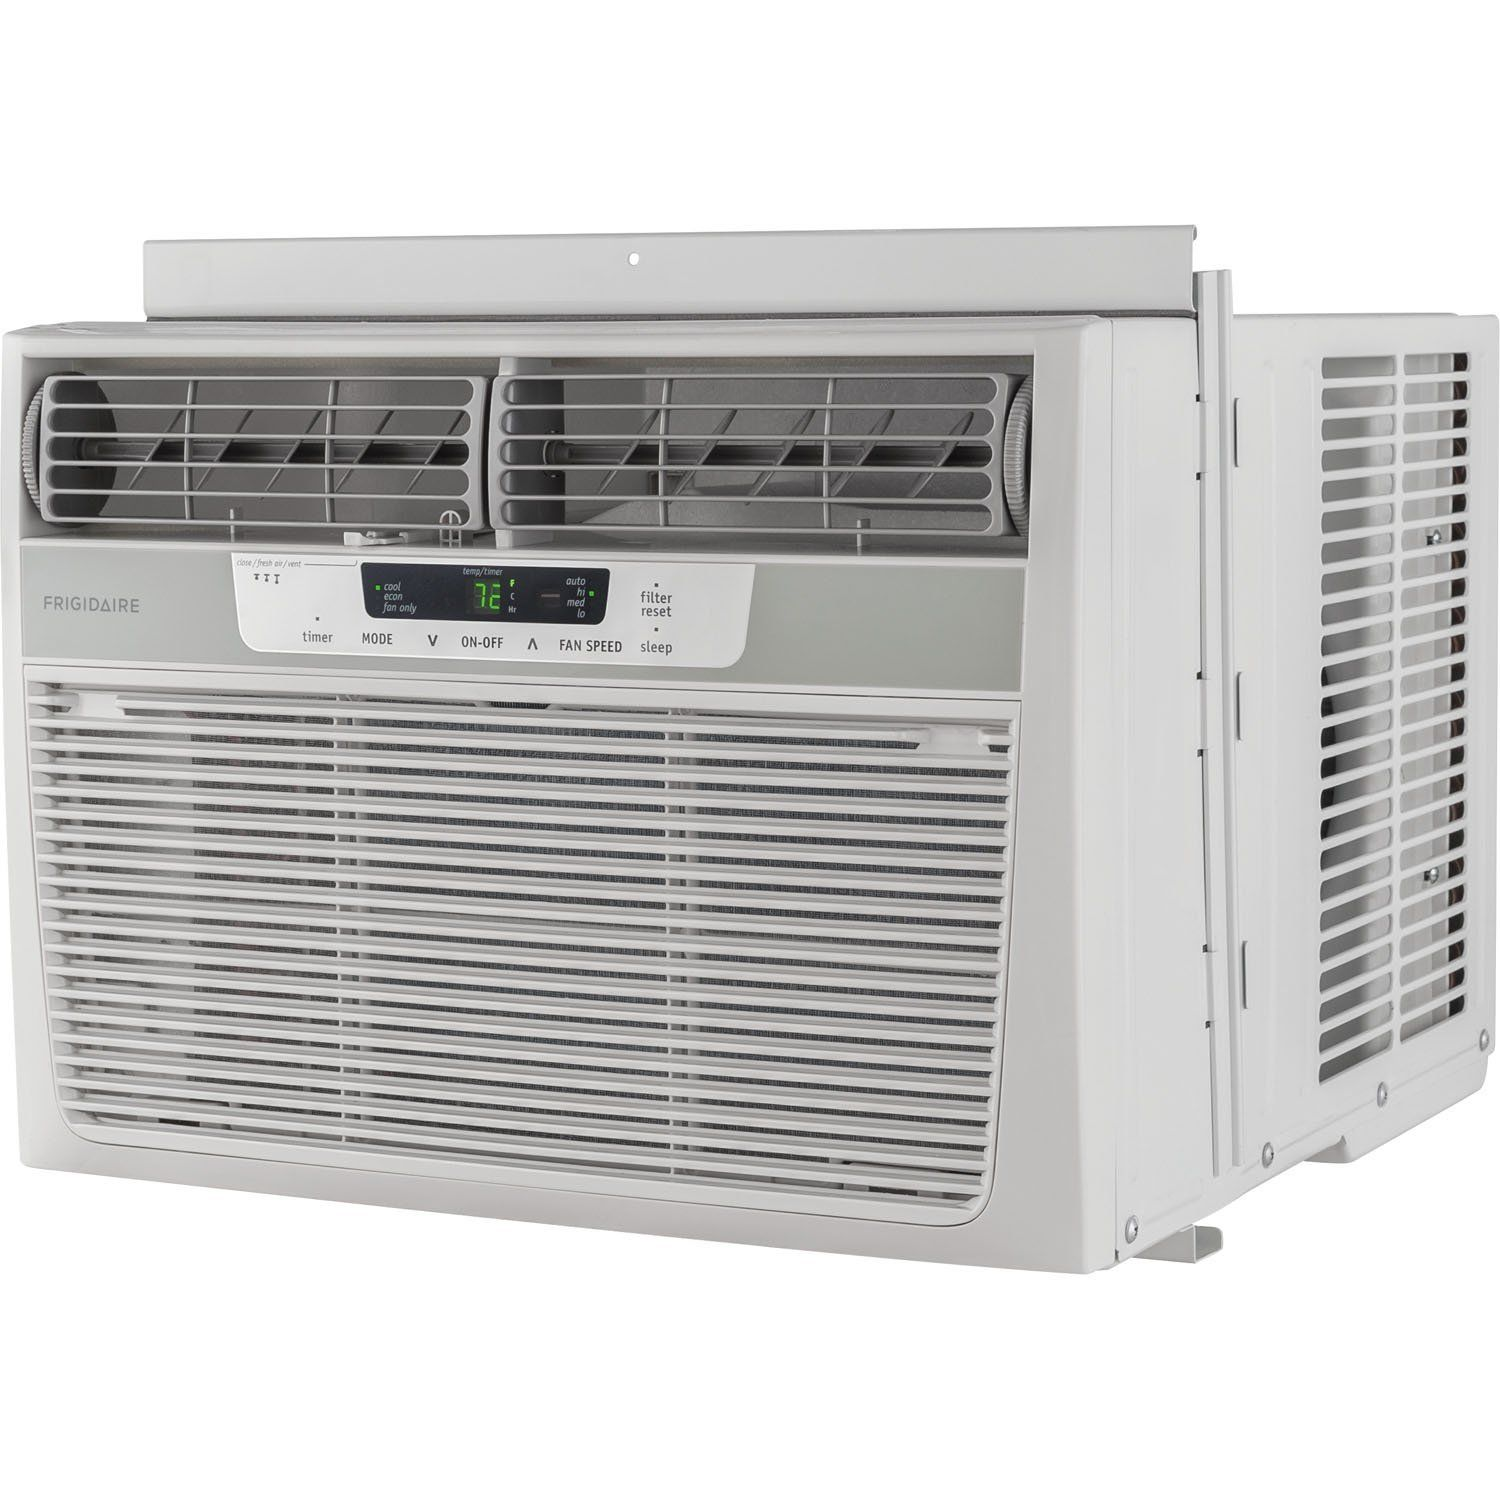 Which Is The Best Window Ac To Buy In 2017 What Best In Canada Best Window Air Conditioner Compact Air Conditioner Room Air Conditioner